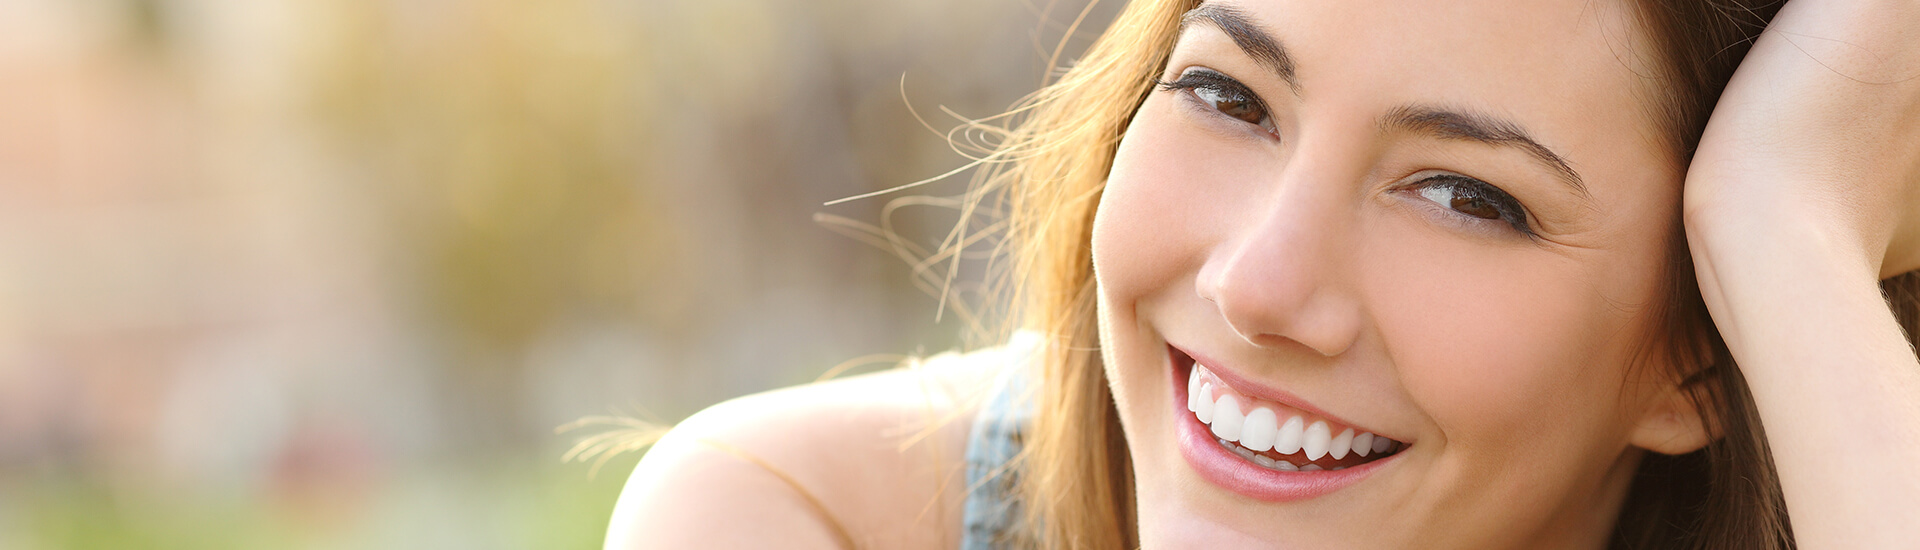 5 Ways to Make Your Smile Sparkle